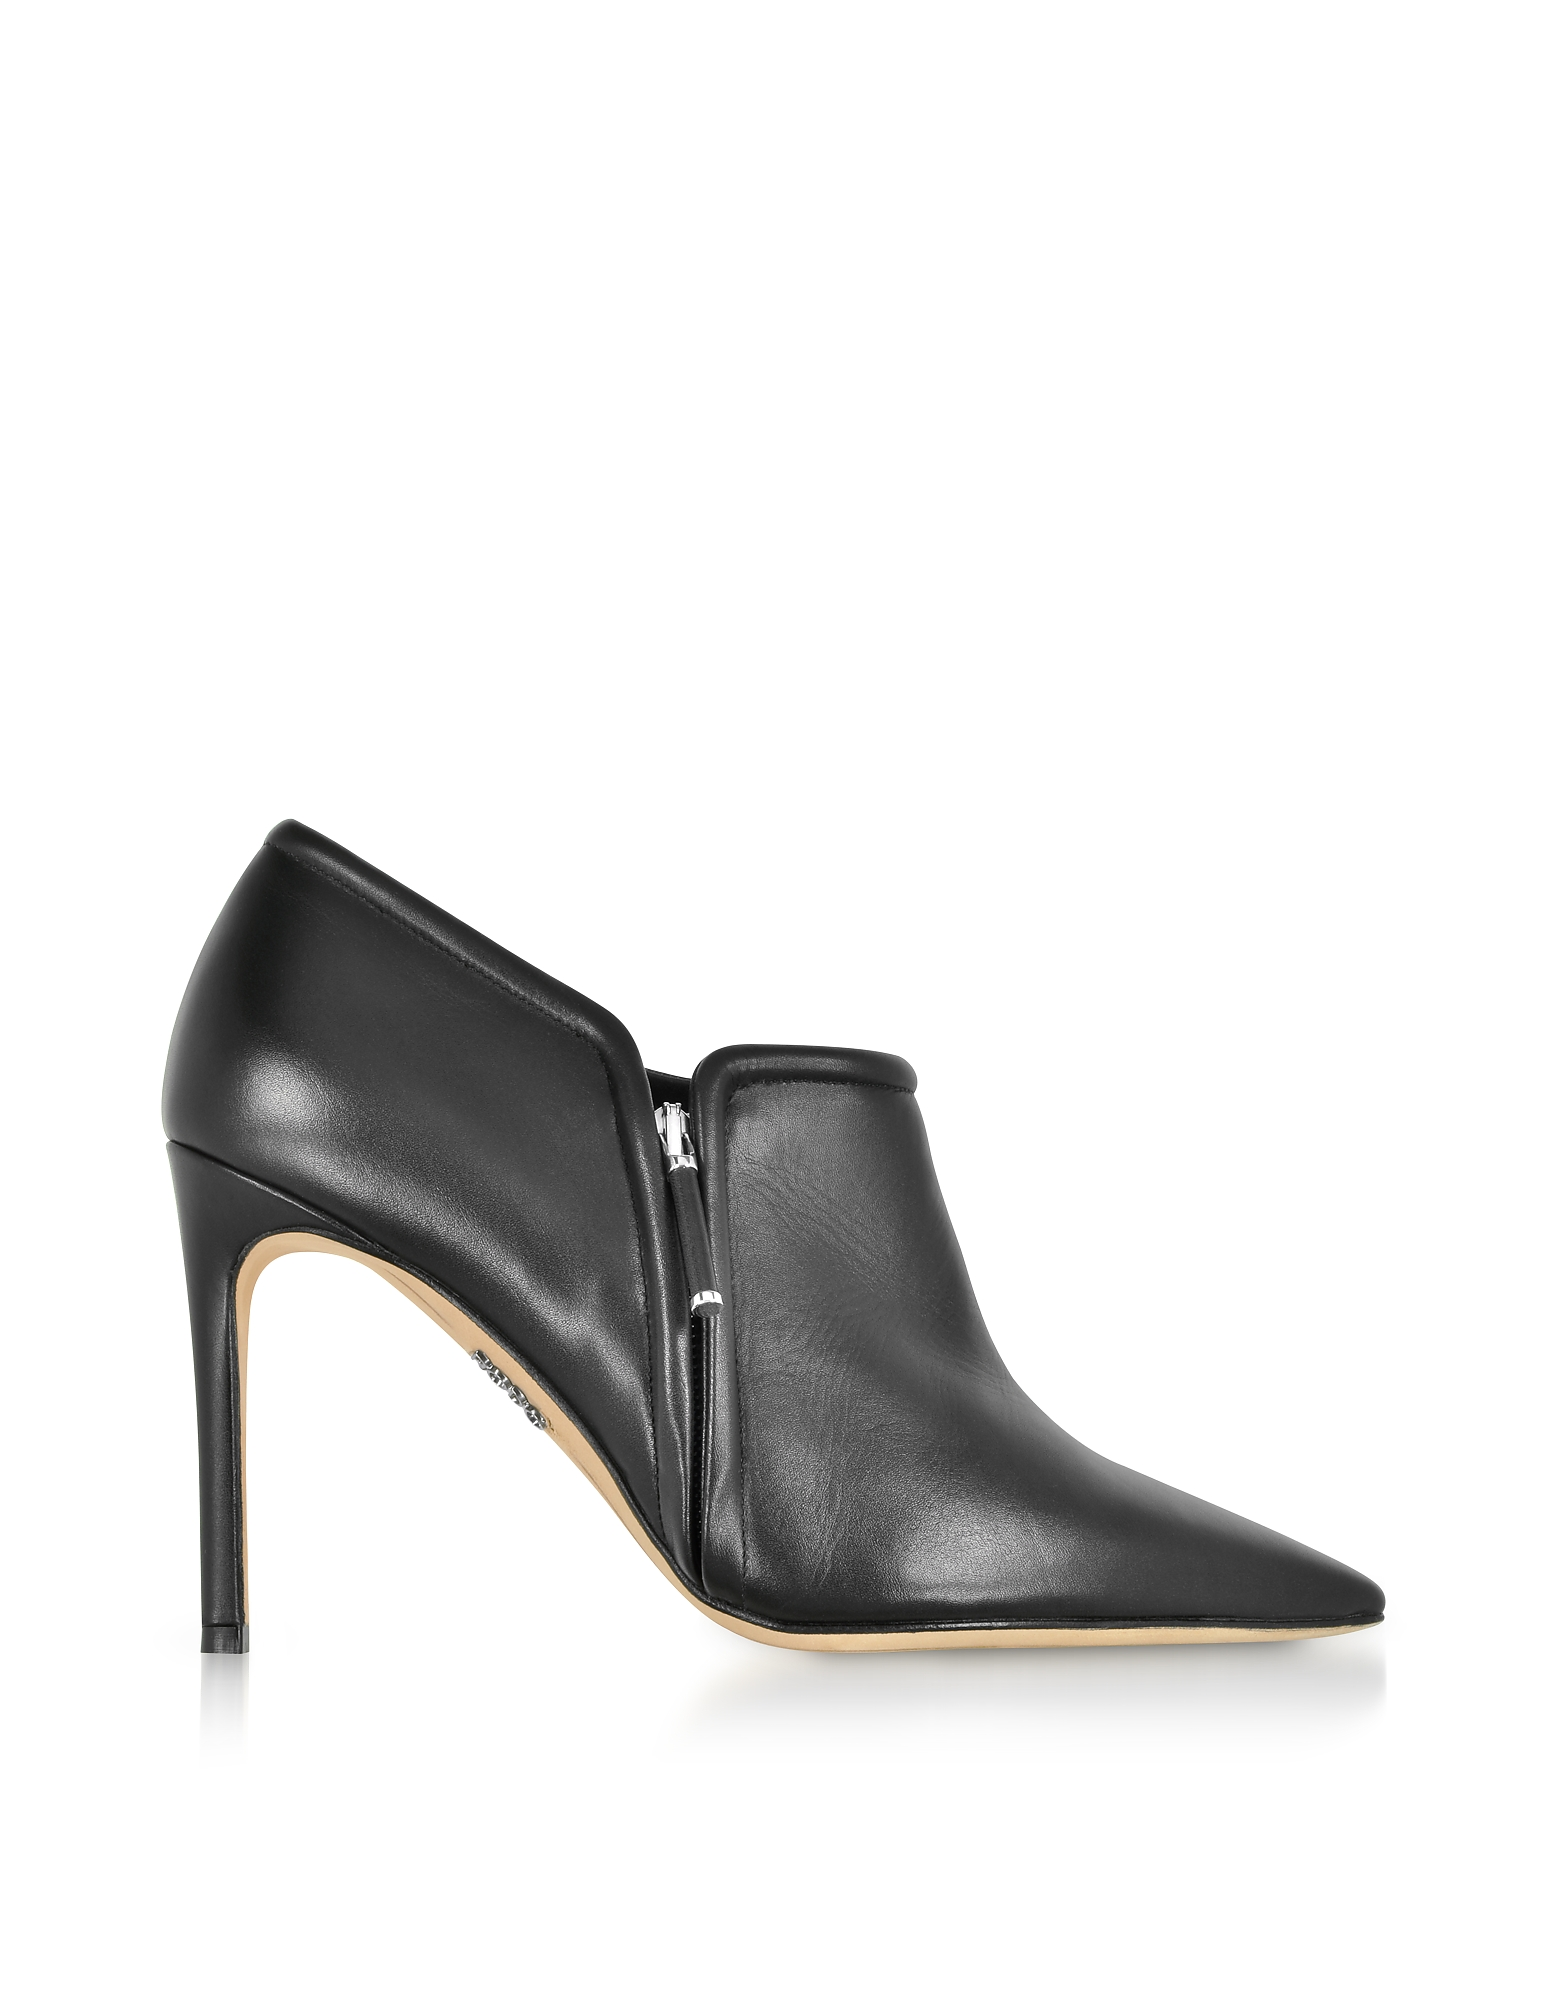 Rodo Shoes, Black Leather High Heel Booties